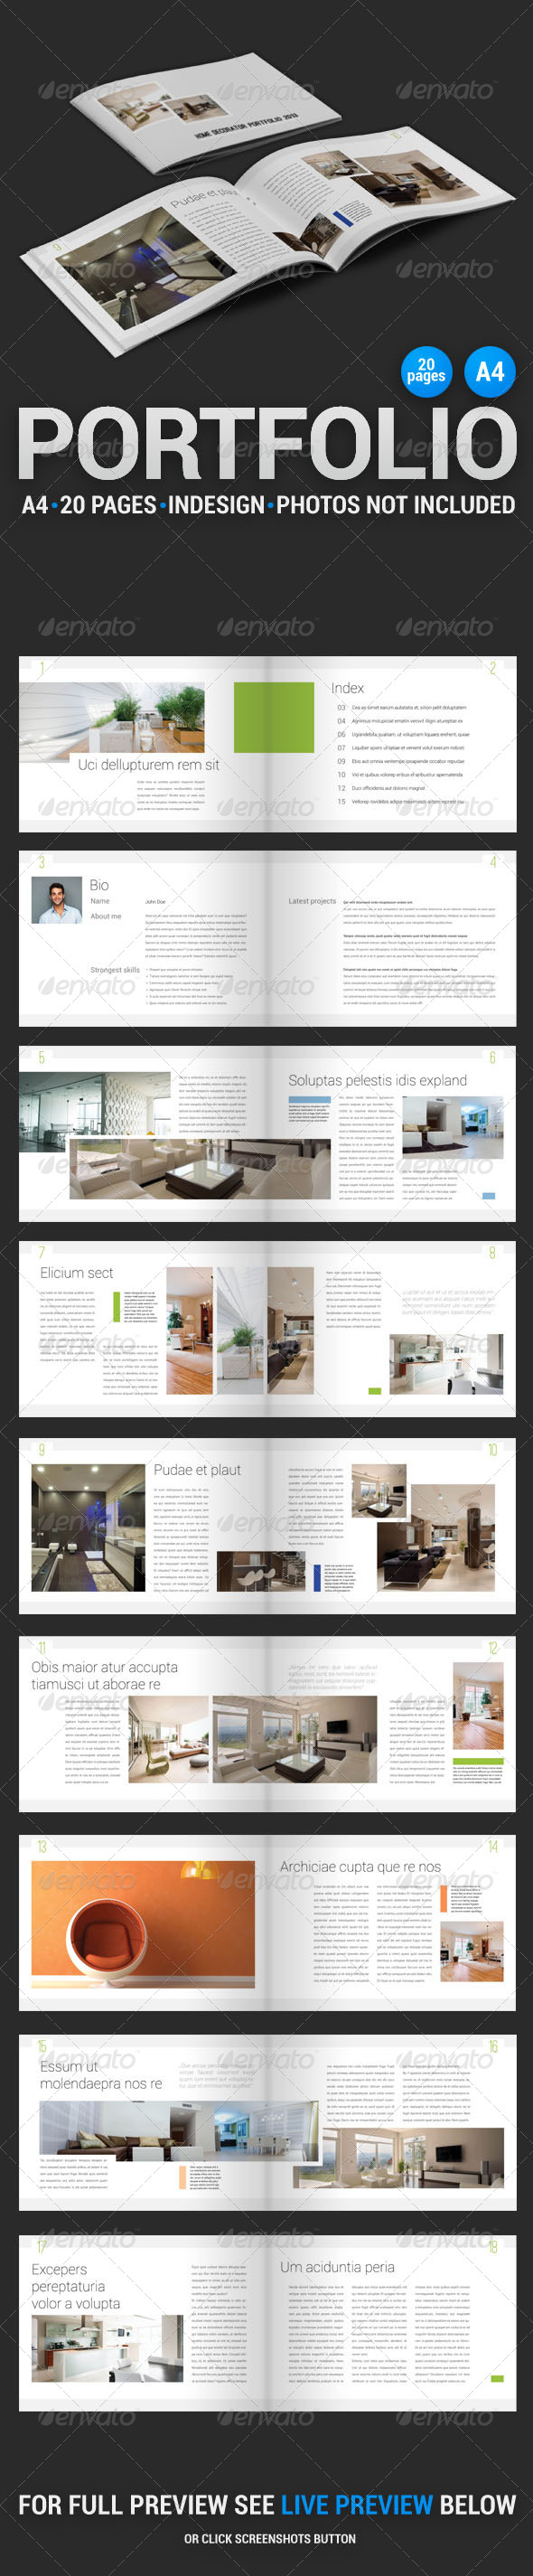 Home Decorator Portfolio 1 - Portfolio Brochures